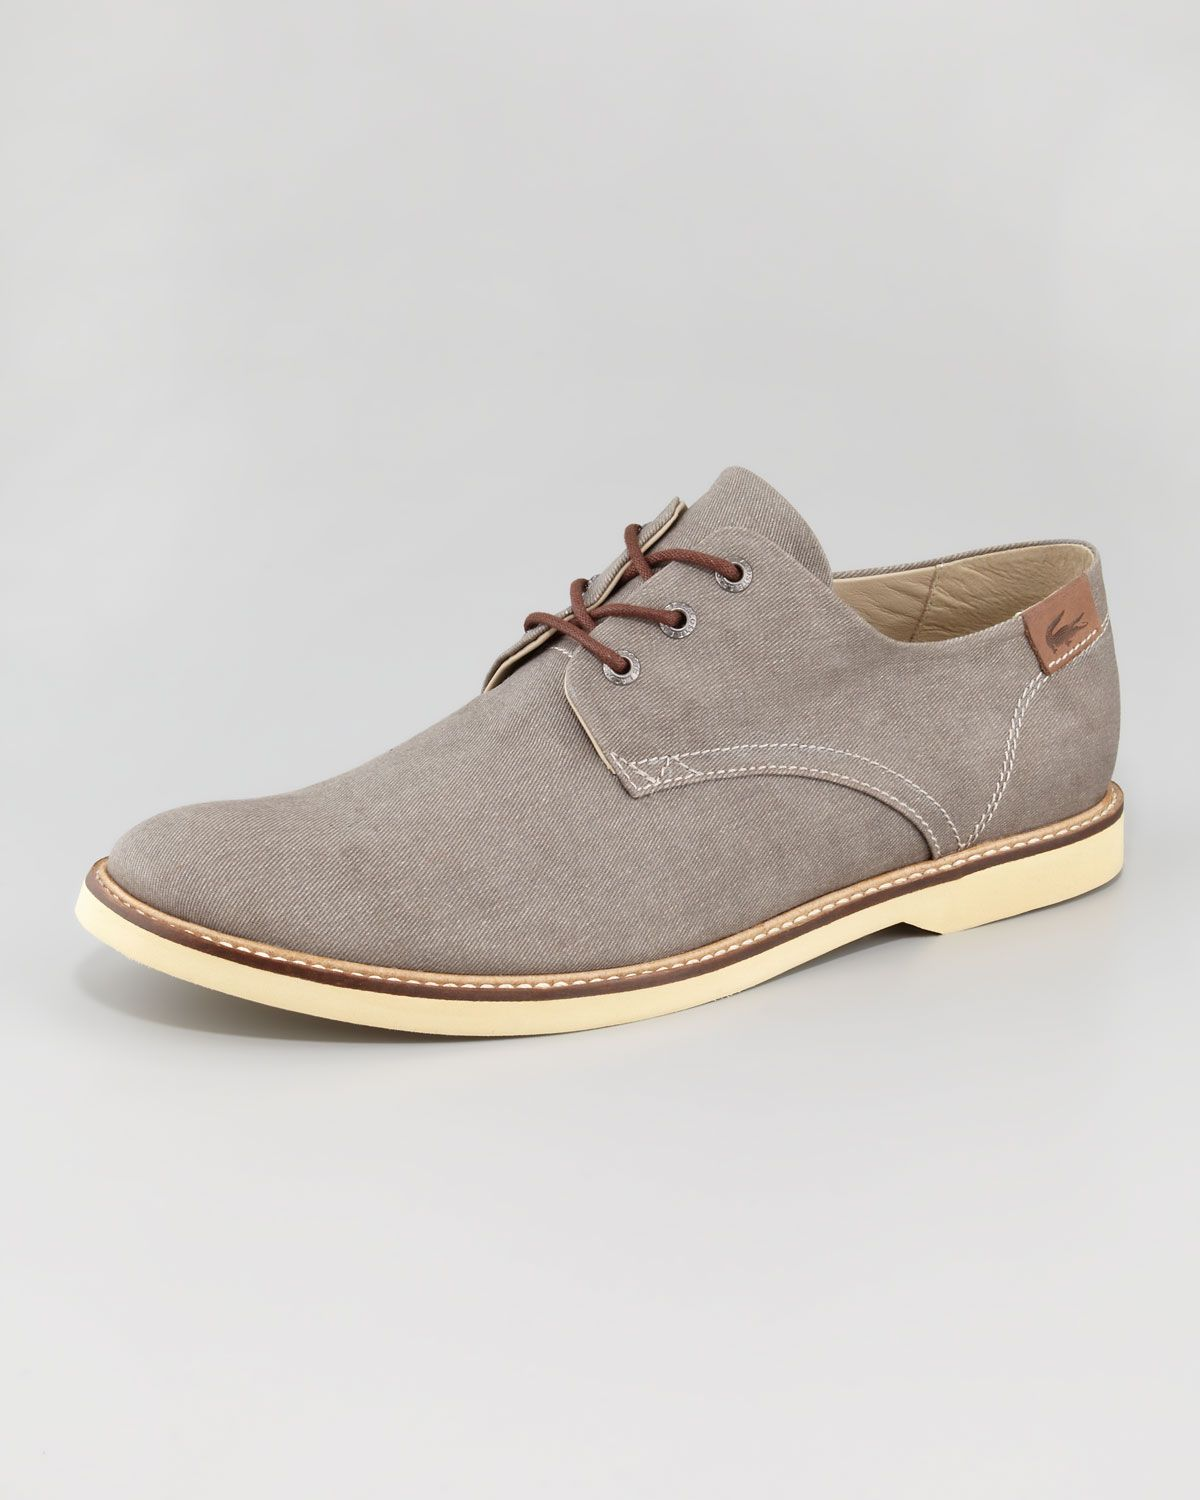 db30fe90f5f2c7 Lacoste Sherbrooke Canvas Lace-Up Shoe